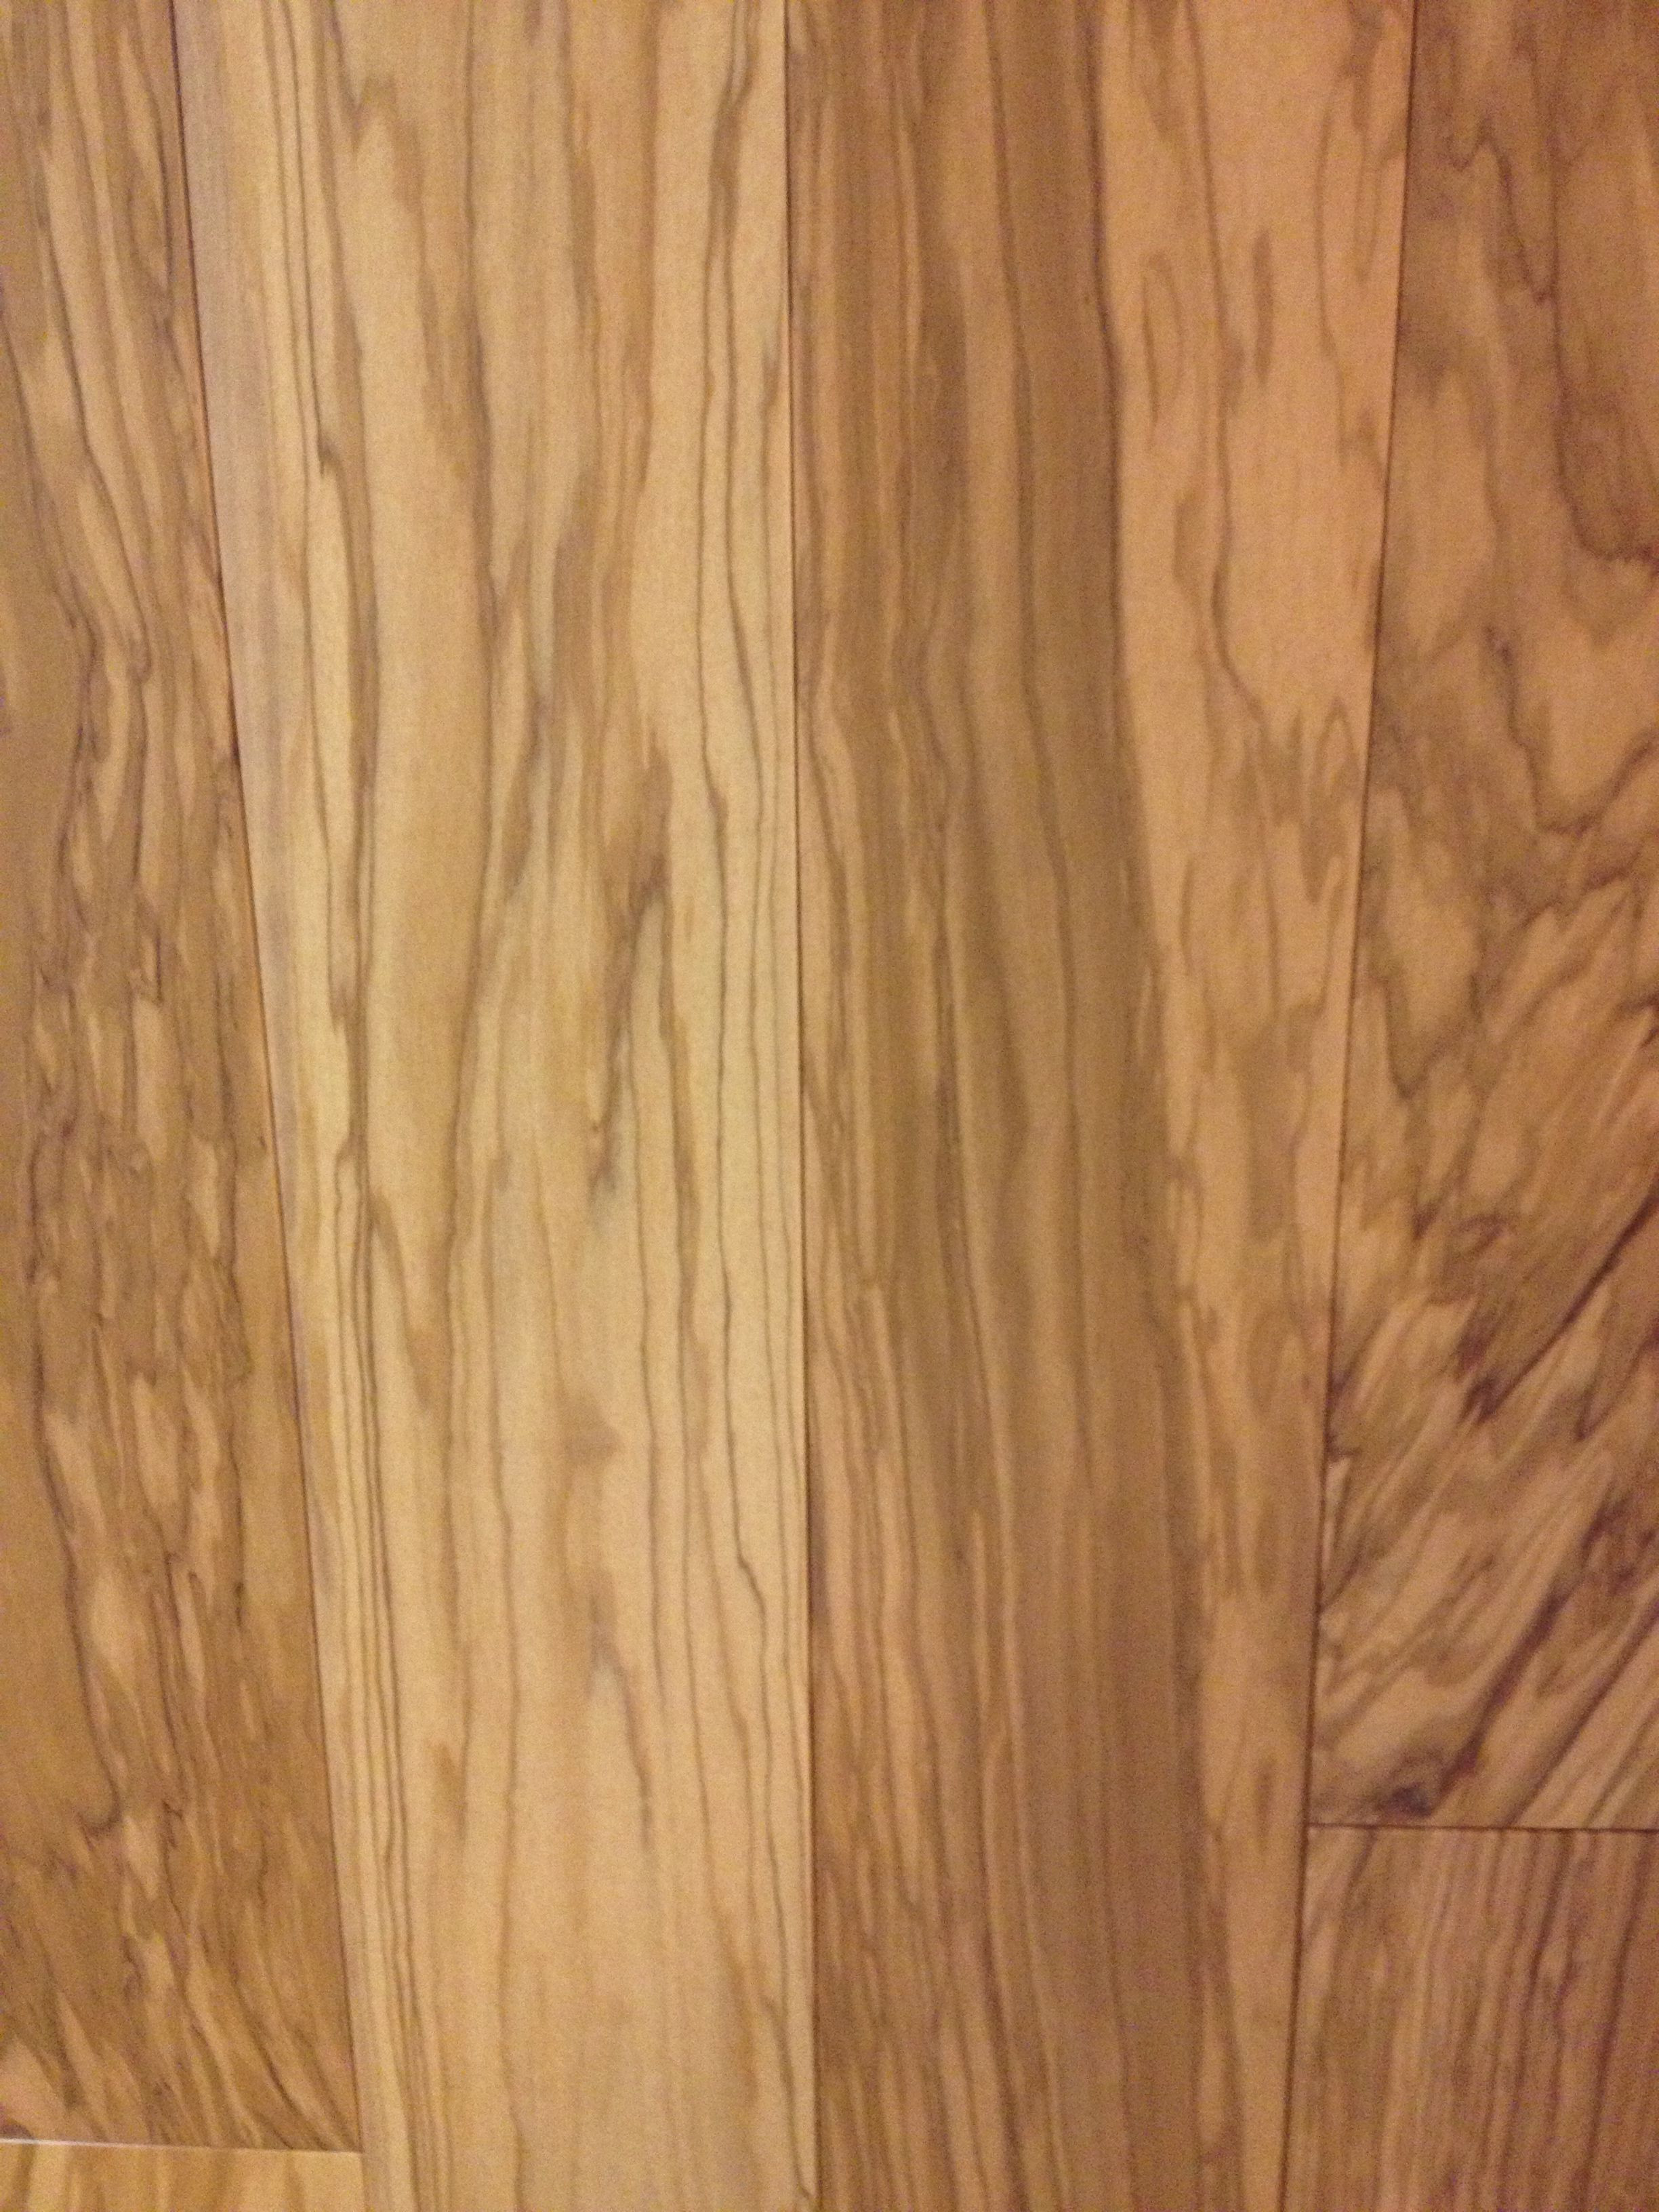 hardwood floor wax of tuscany olive wood floor there is nothing quite like olive wood for with tuscany olive wood floor there is nothing quite like olive wood for turning your home